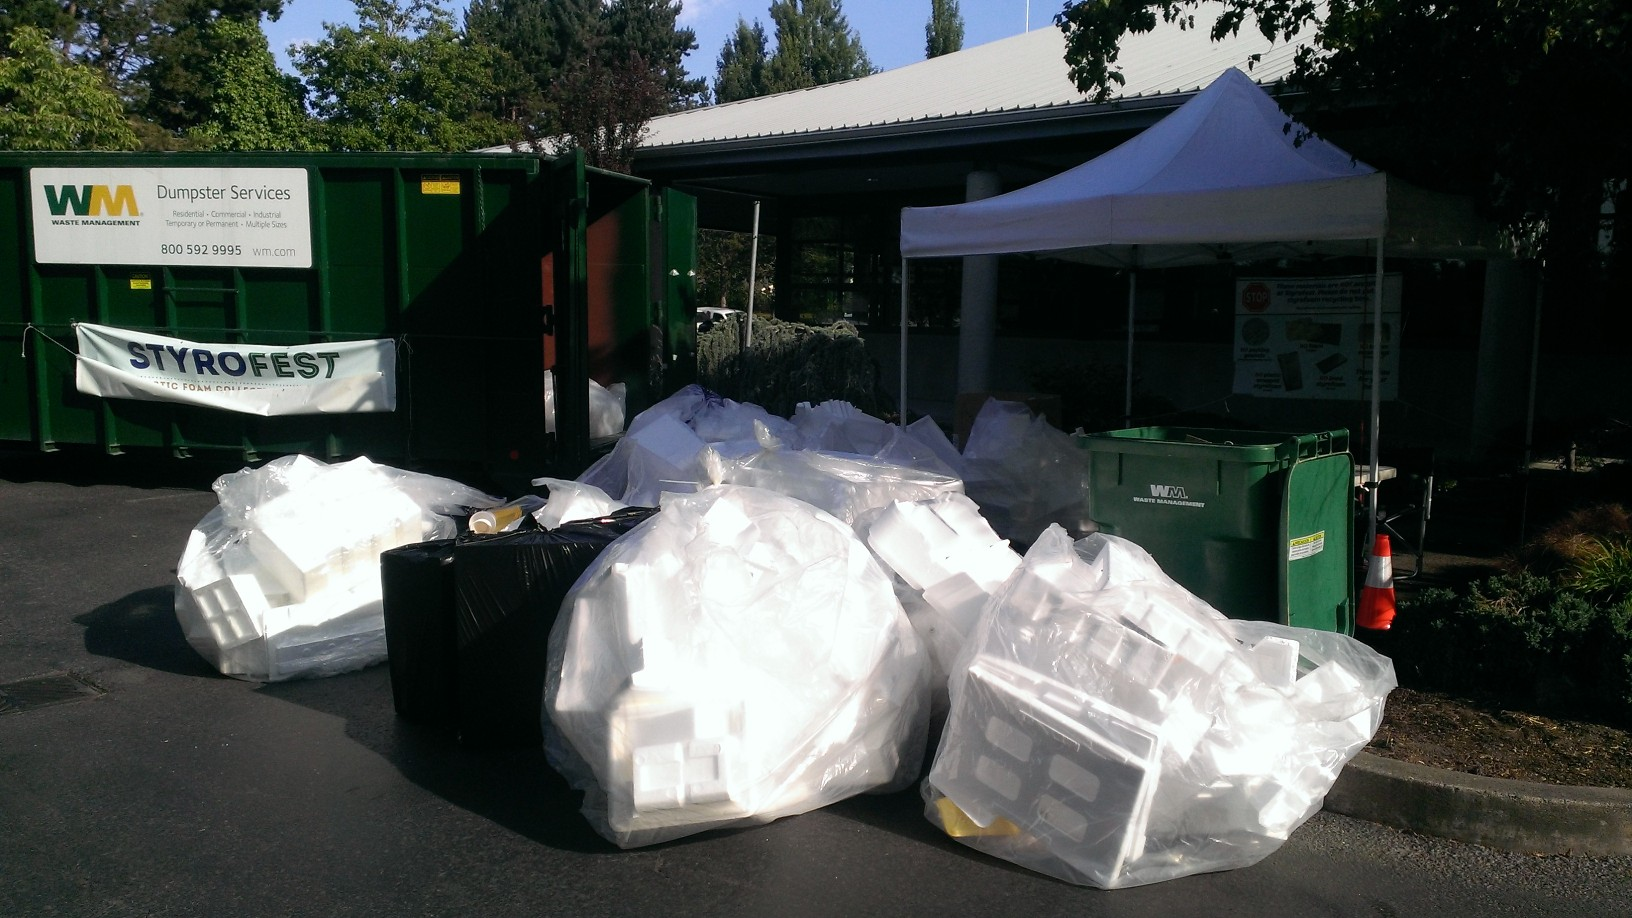 Bagged styrofoam for recycling collected in June 2015